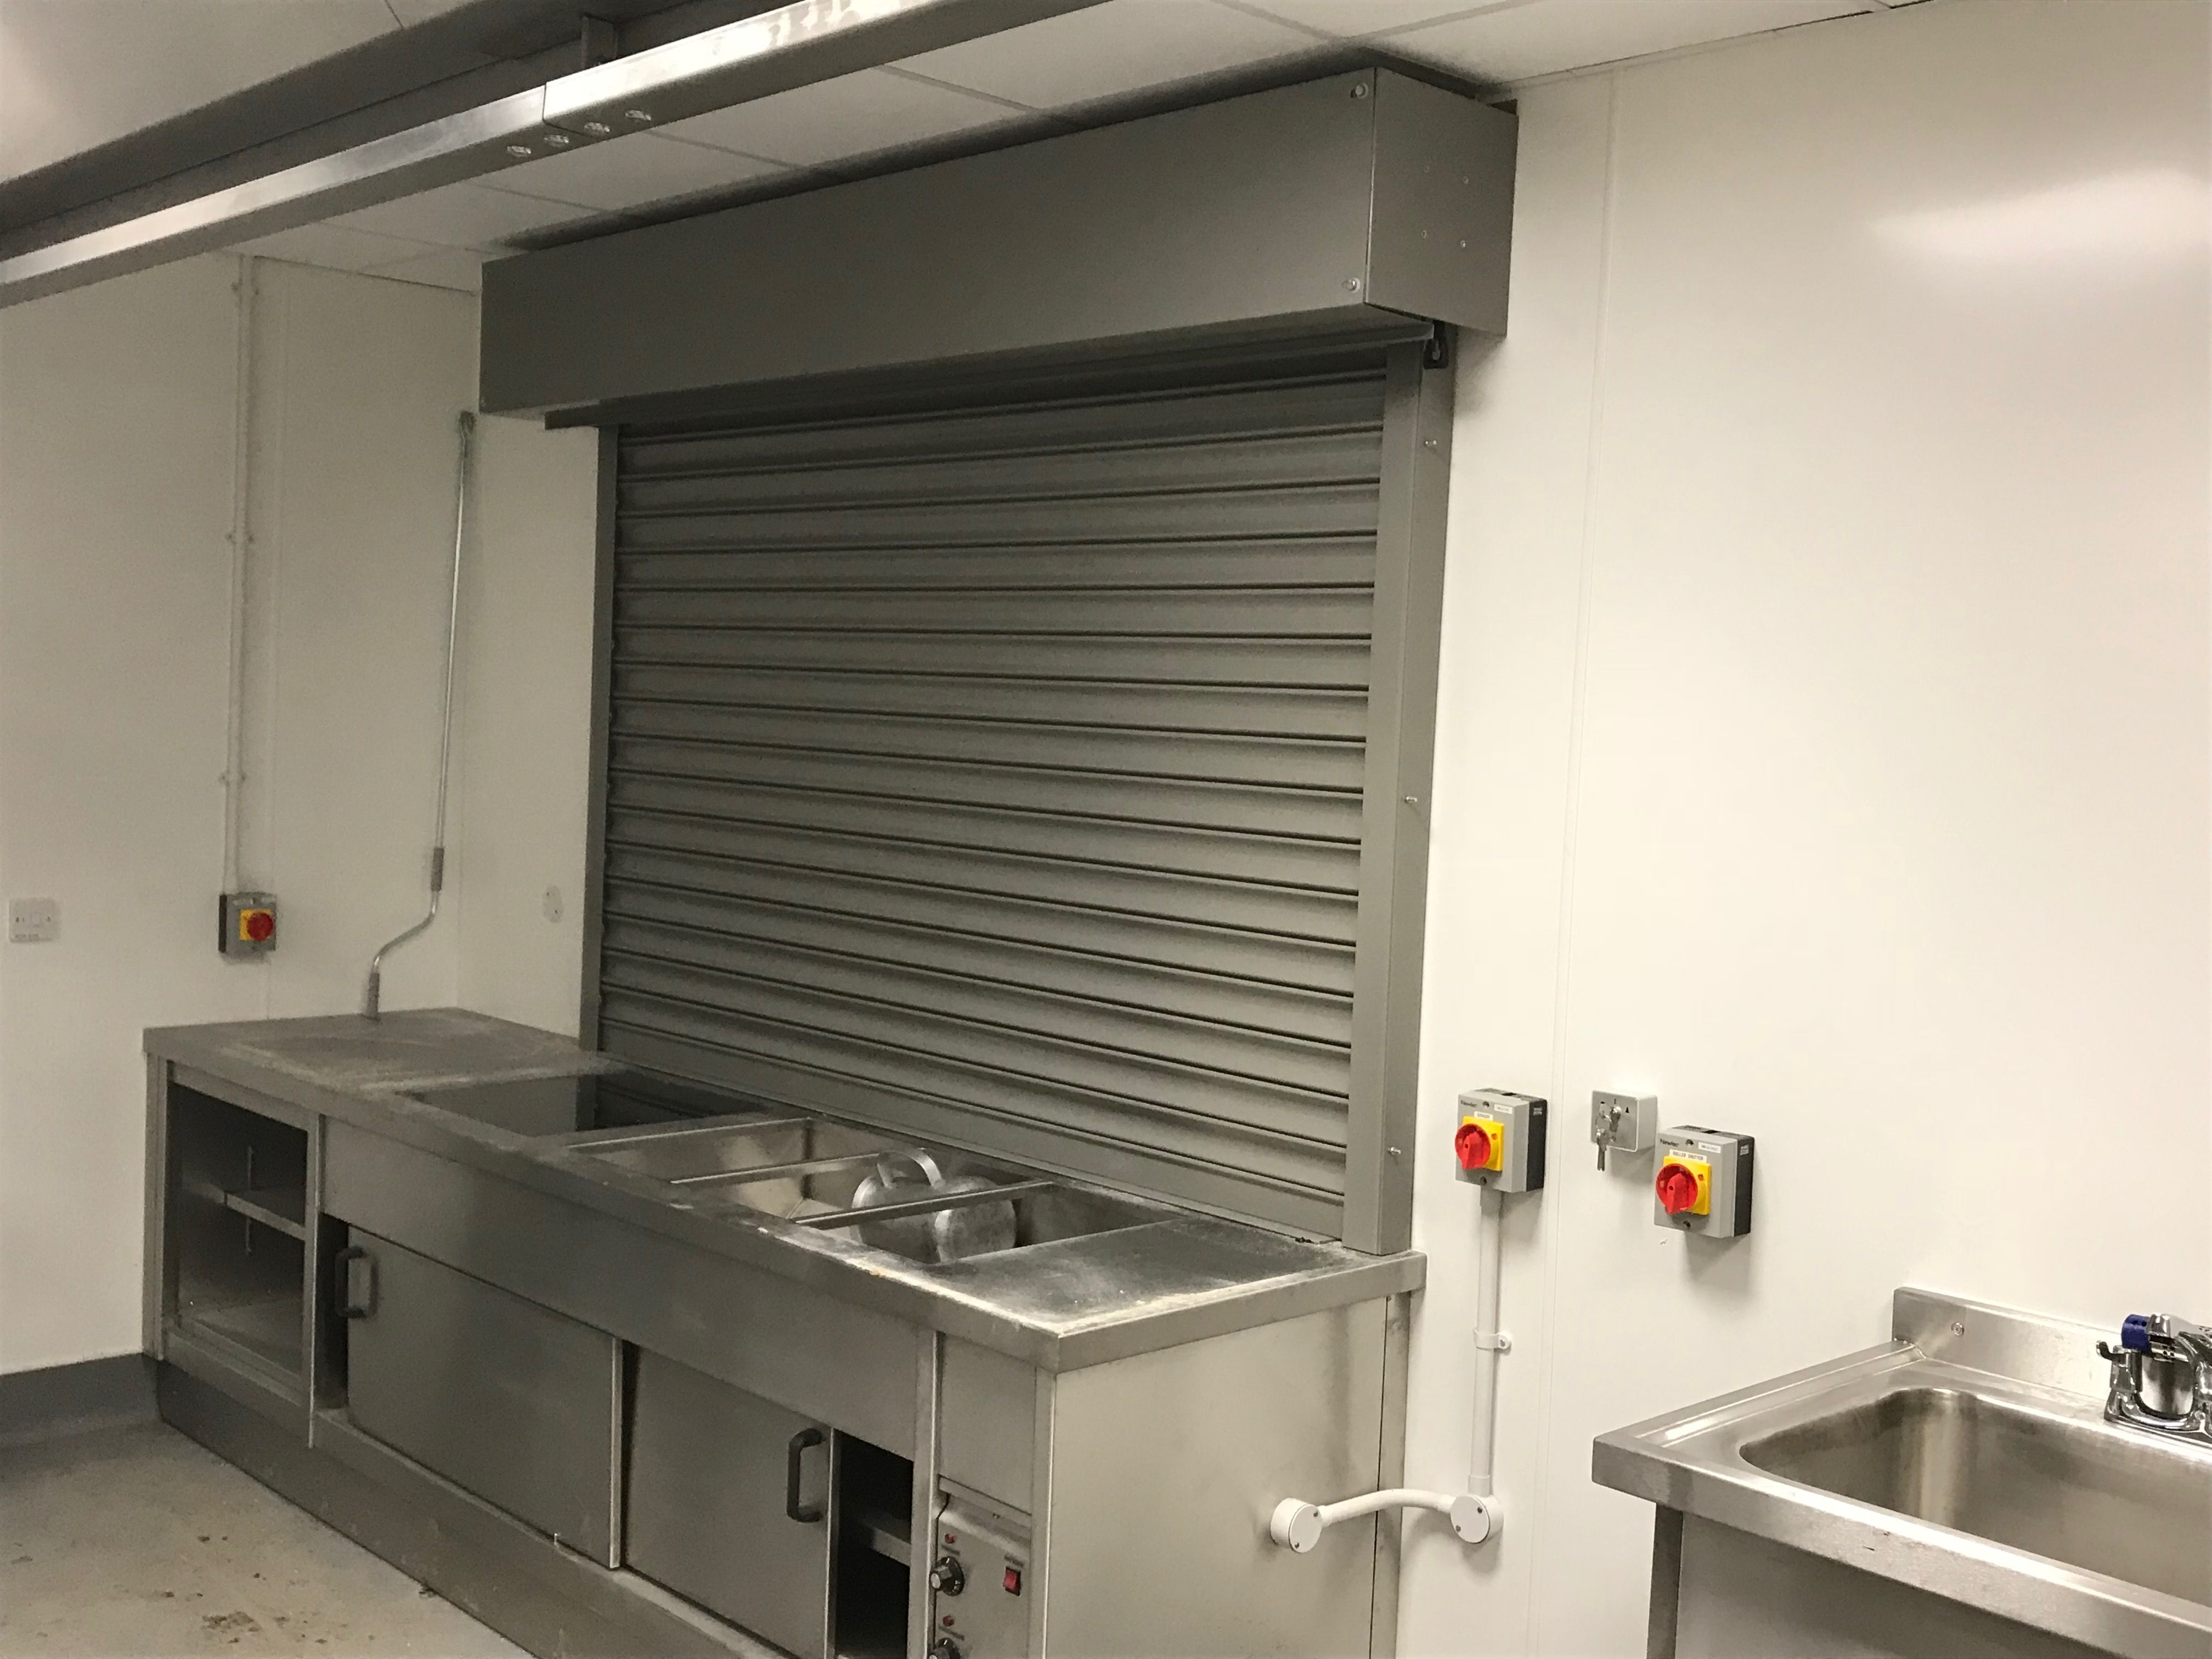 New Fire Rated Roller Shutter Installed In A Kitchen Serving Hatch